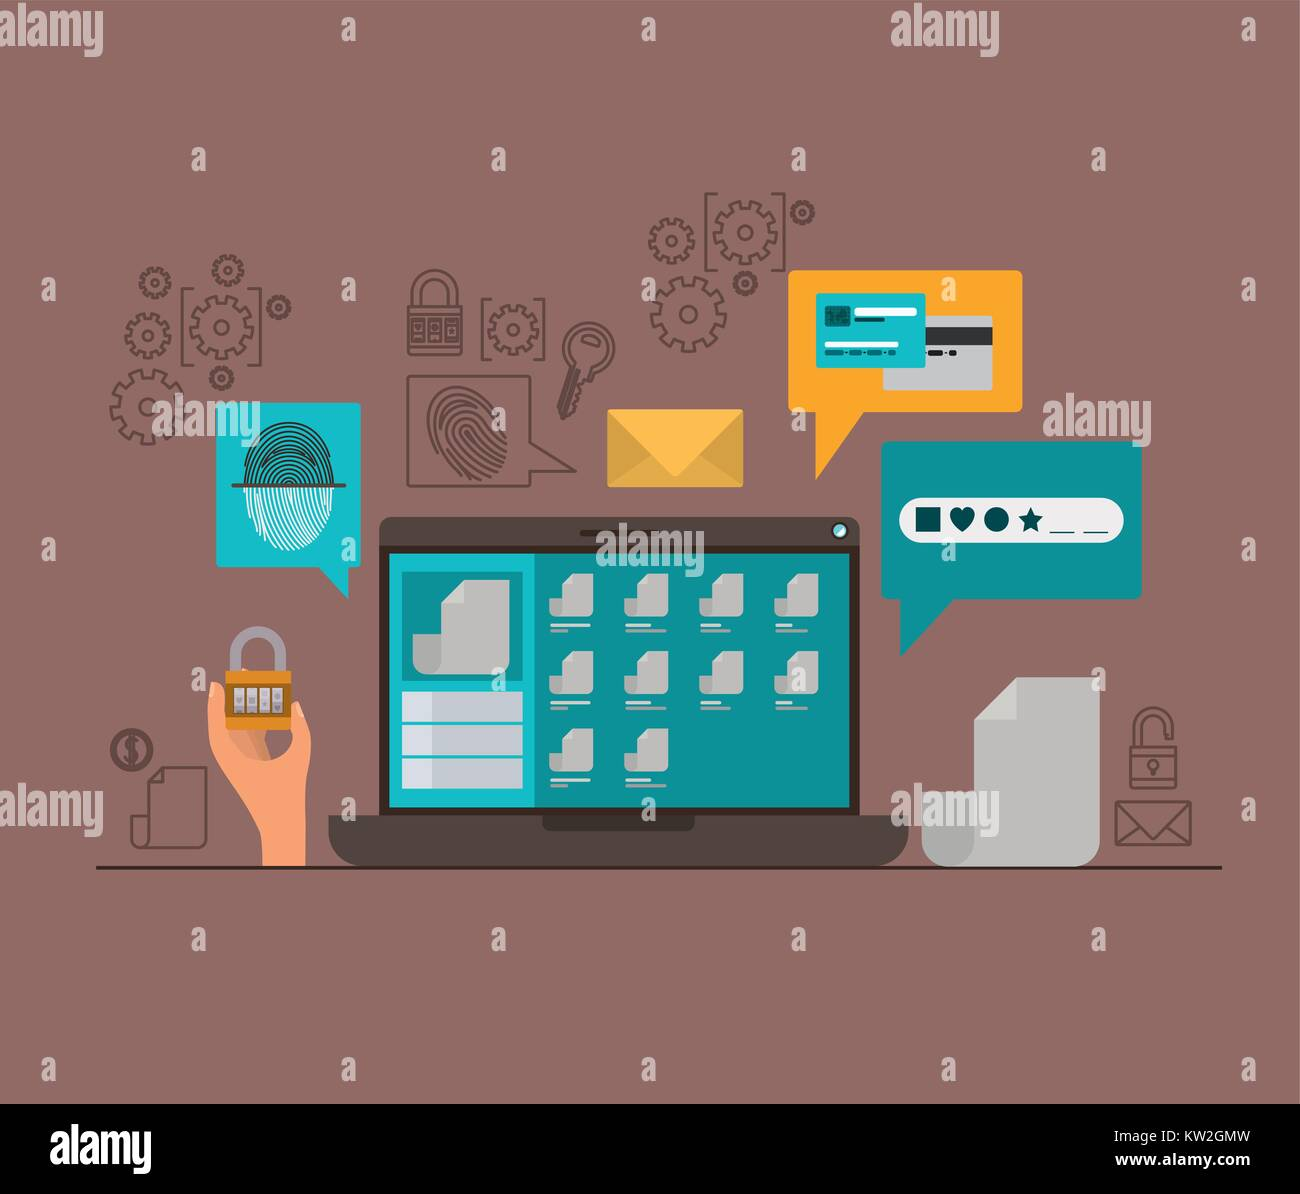 mobile security with laptop computer and secure apps in brown color background - Stock Image